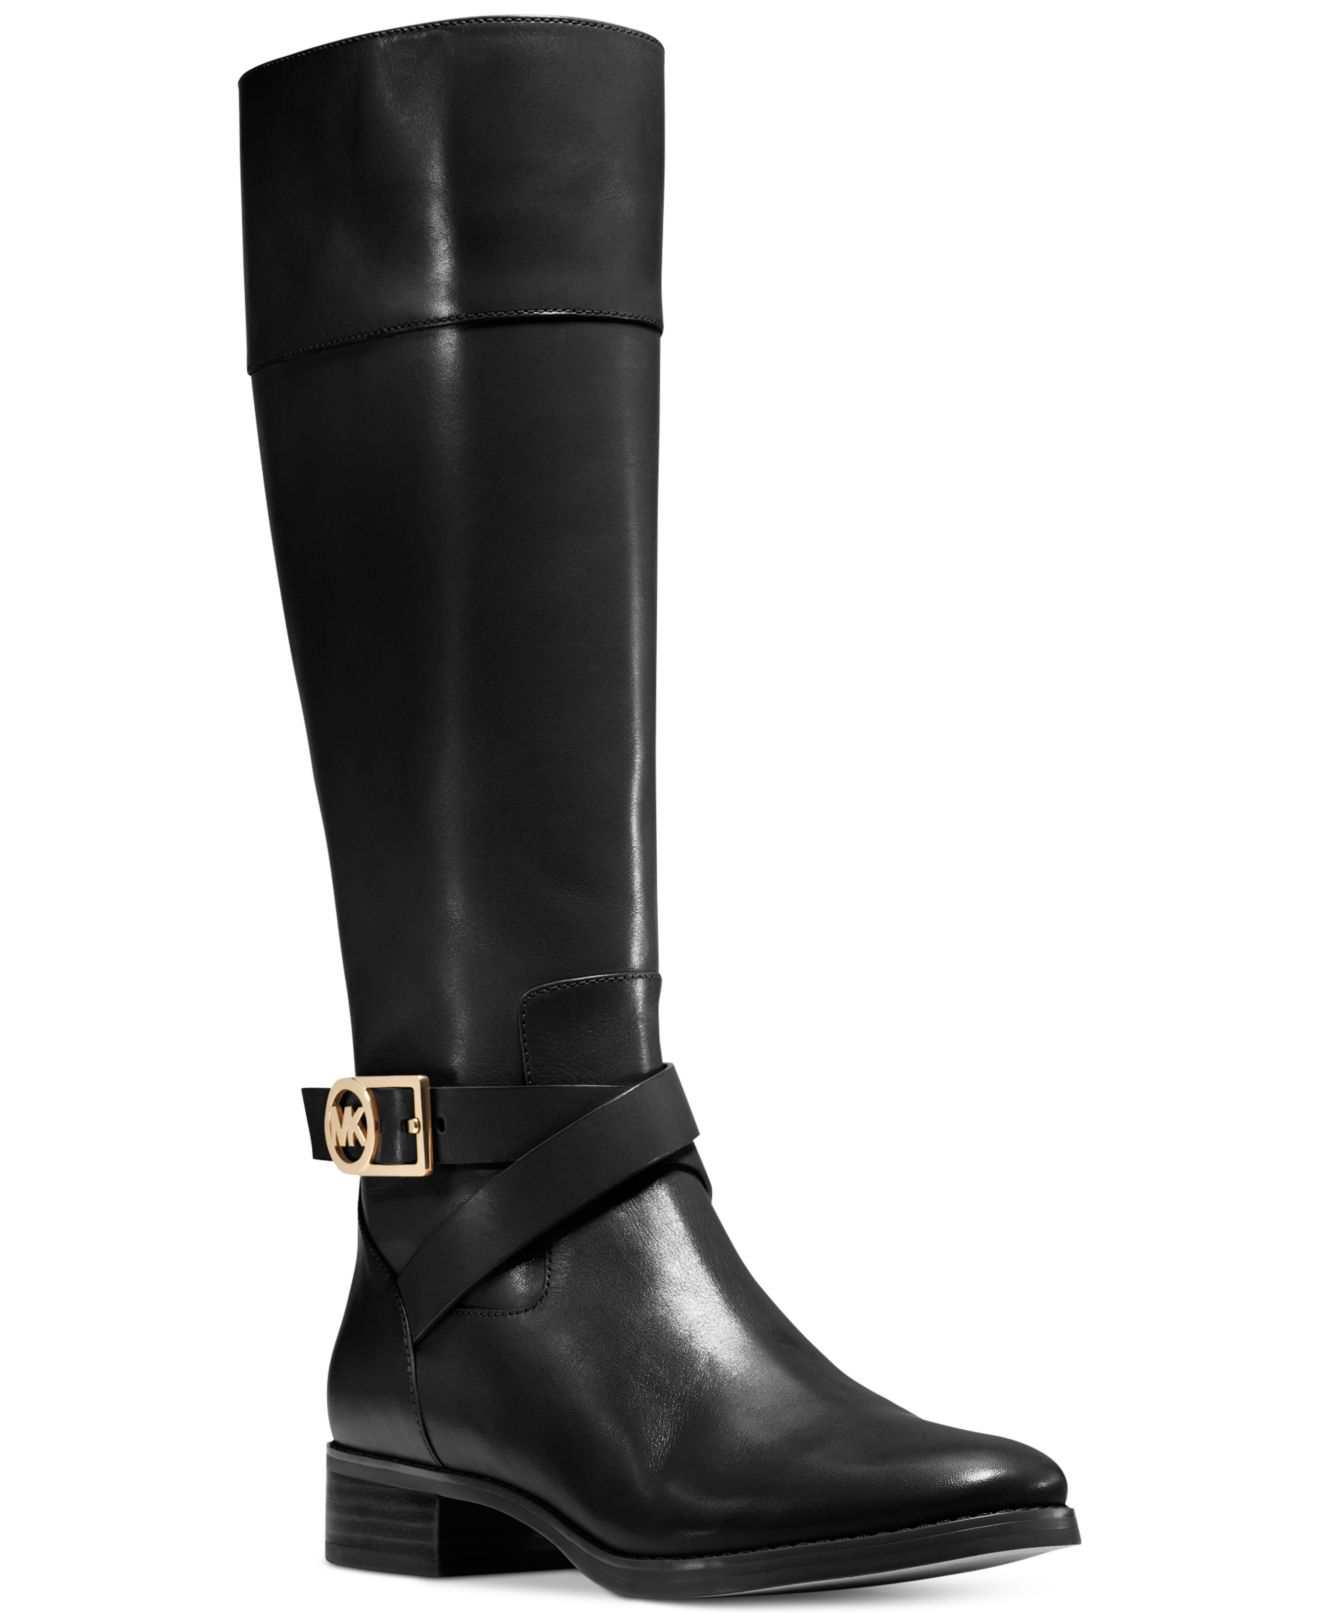 Michael Kors Boots With Fur Michael Kors Bryce Boots